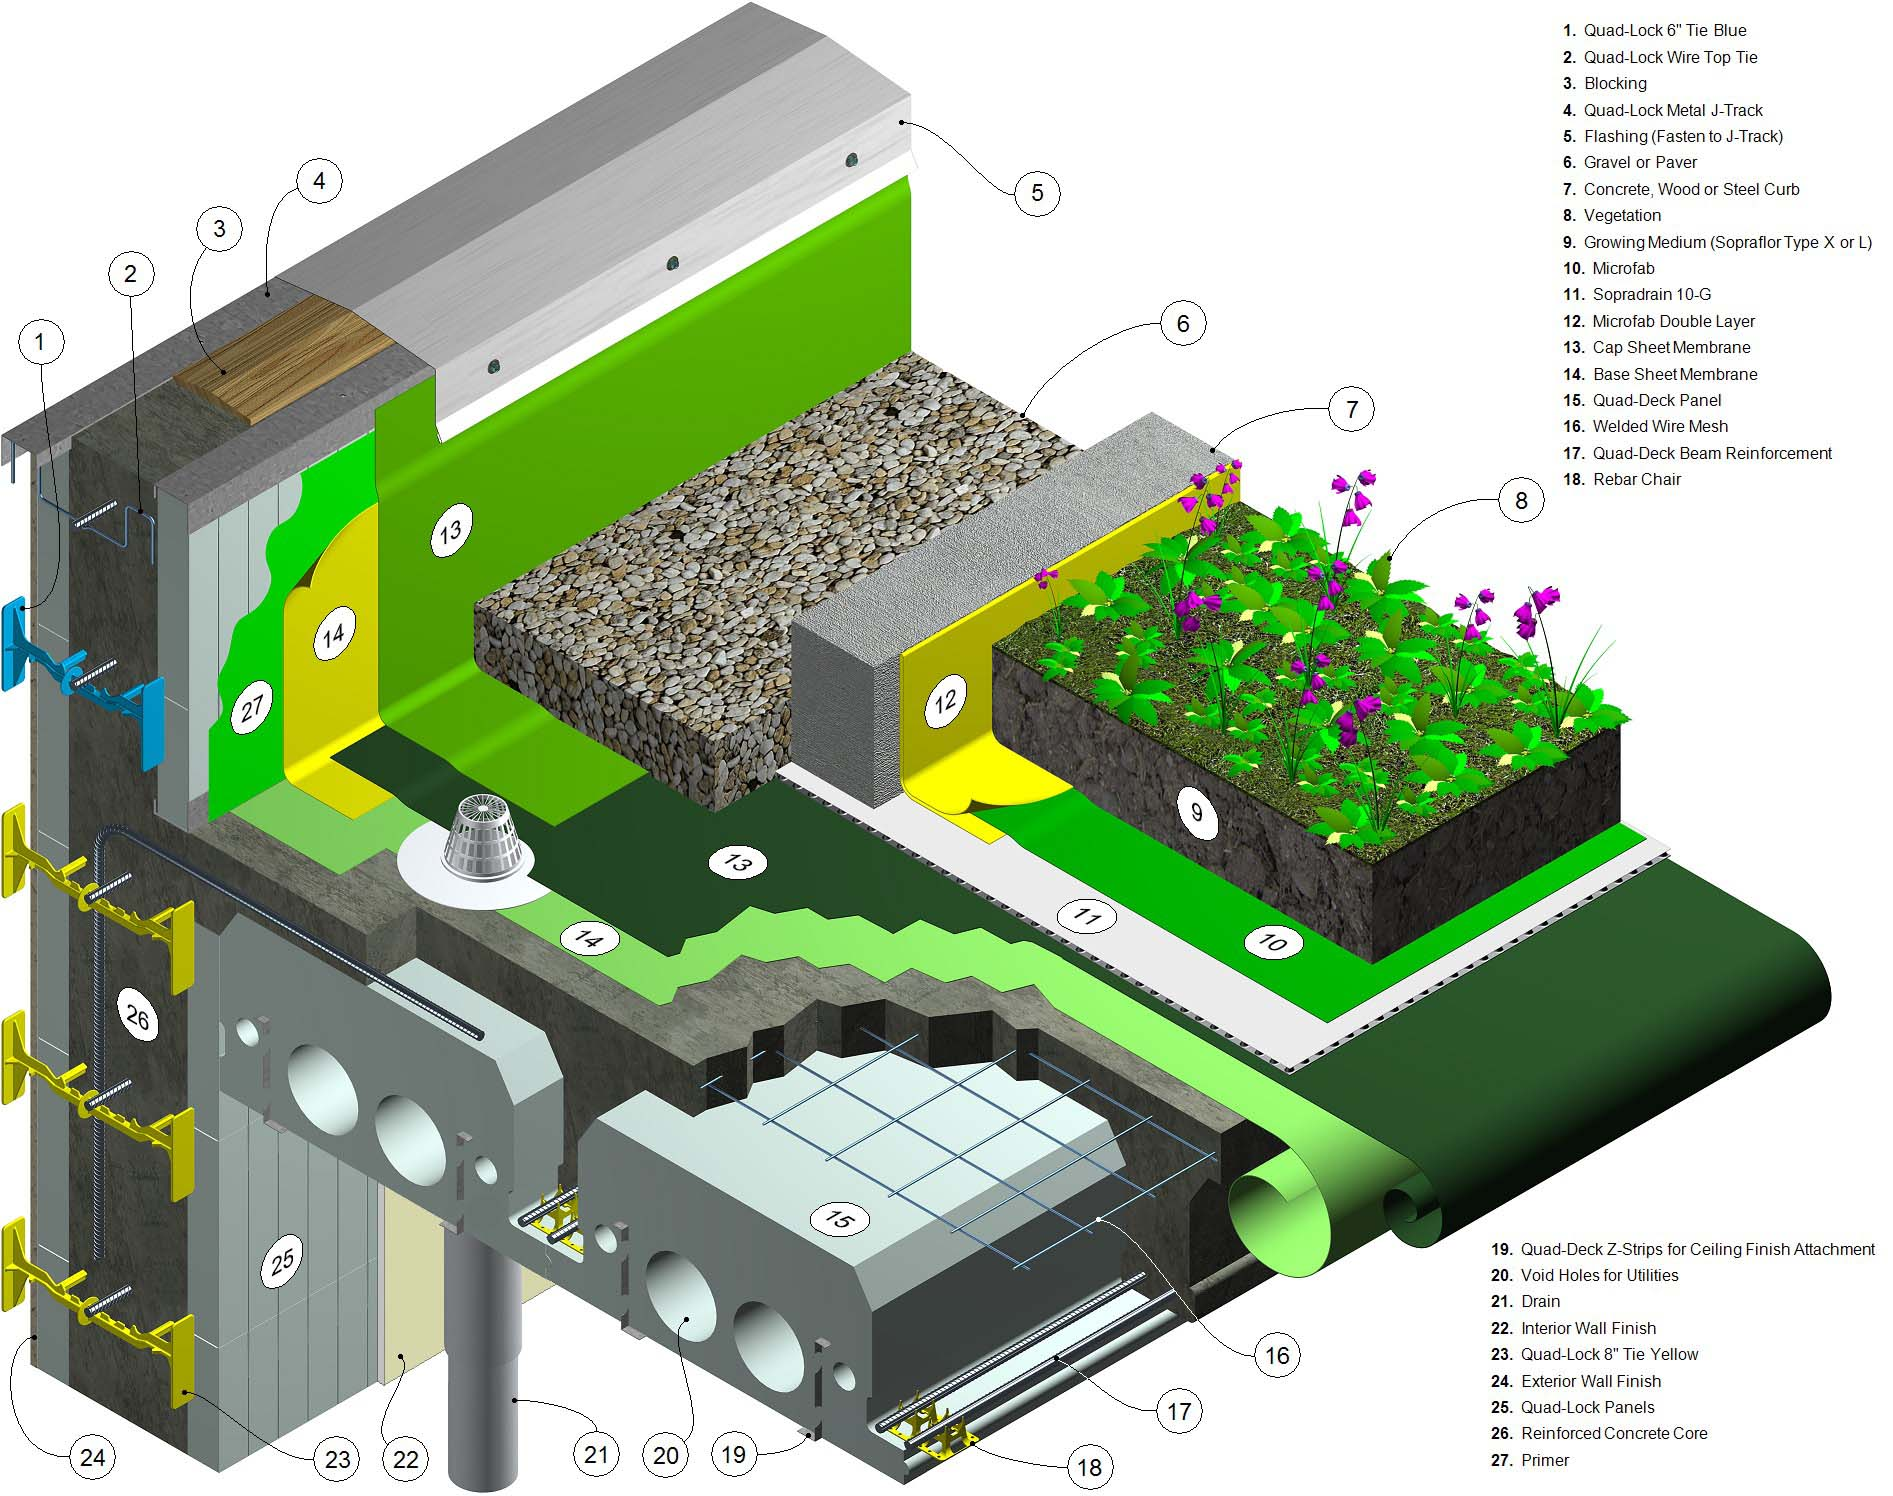 Green Roofs with Insulated Concrete Forms - Thermal Performance Research Study  sc 1 st  Quad-Lock Building Systems & Green Roofs with Insulated Concrete Forms - Thermal Performance ... memphite.com